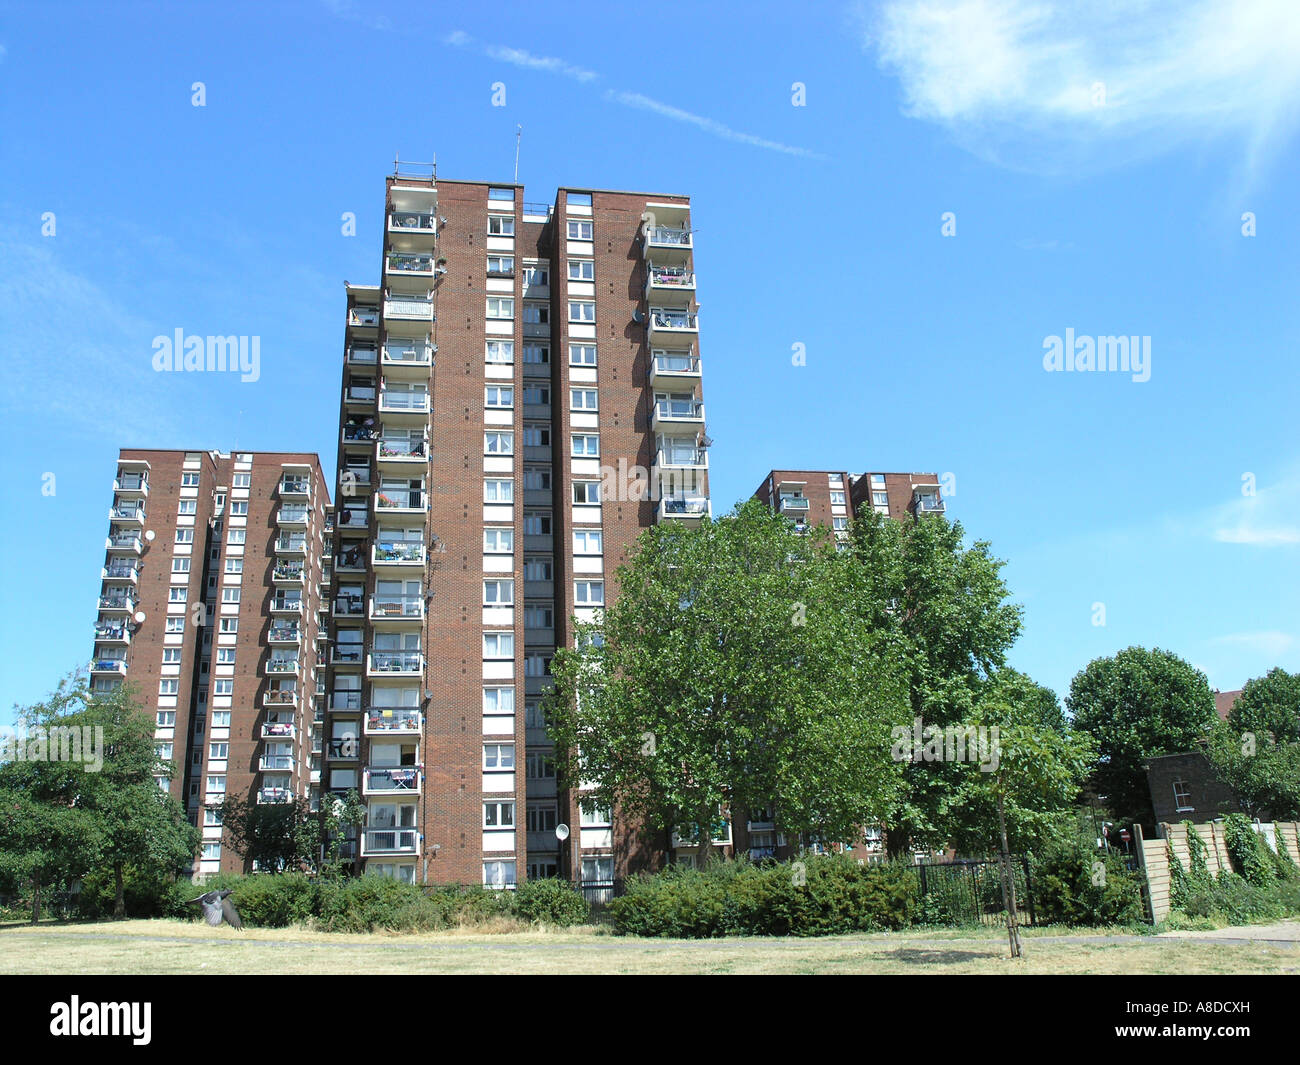 Council Estate Tower Blocks, Portland Estate, Walworth, Southwark London SE17 - Stock Image